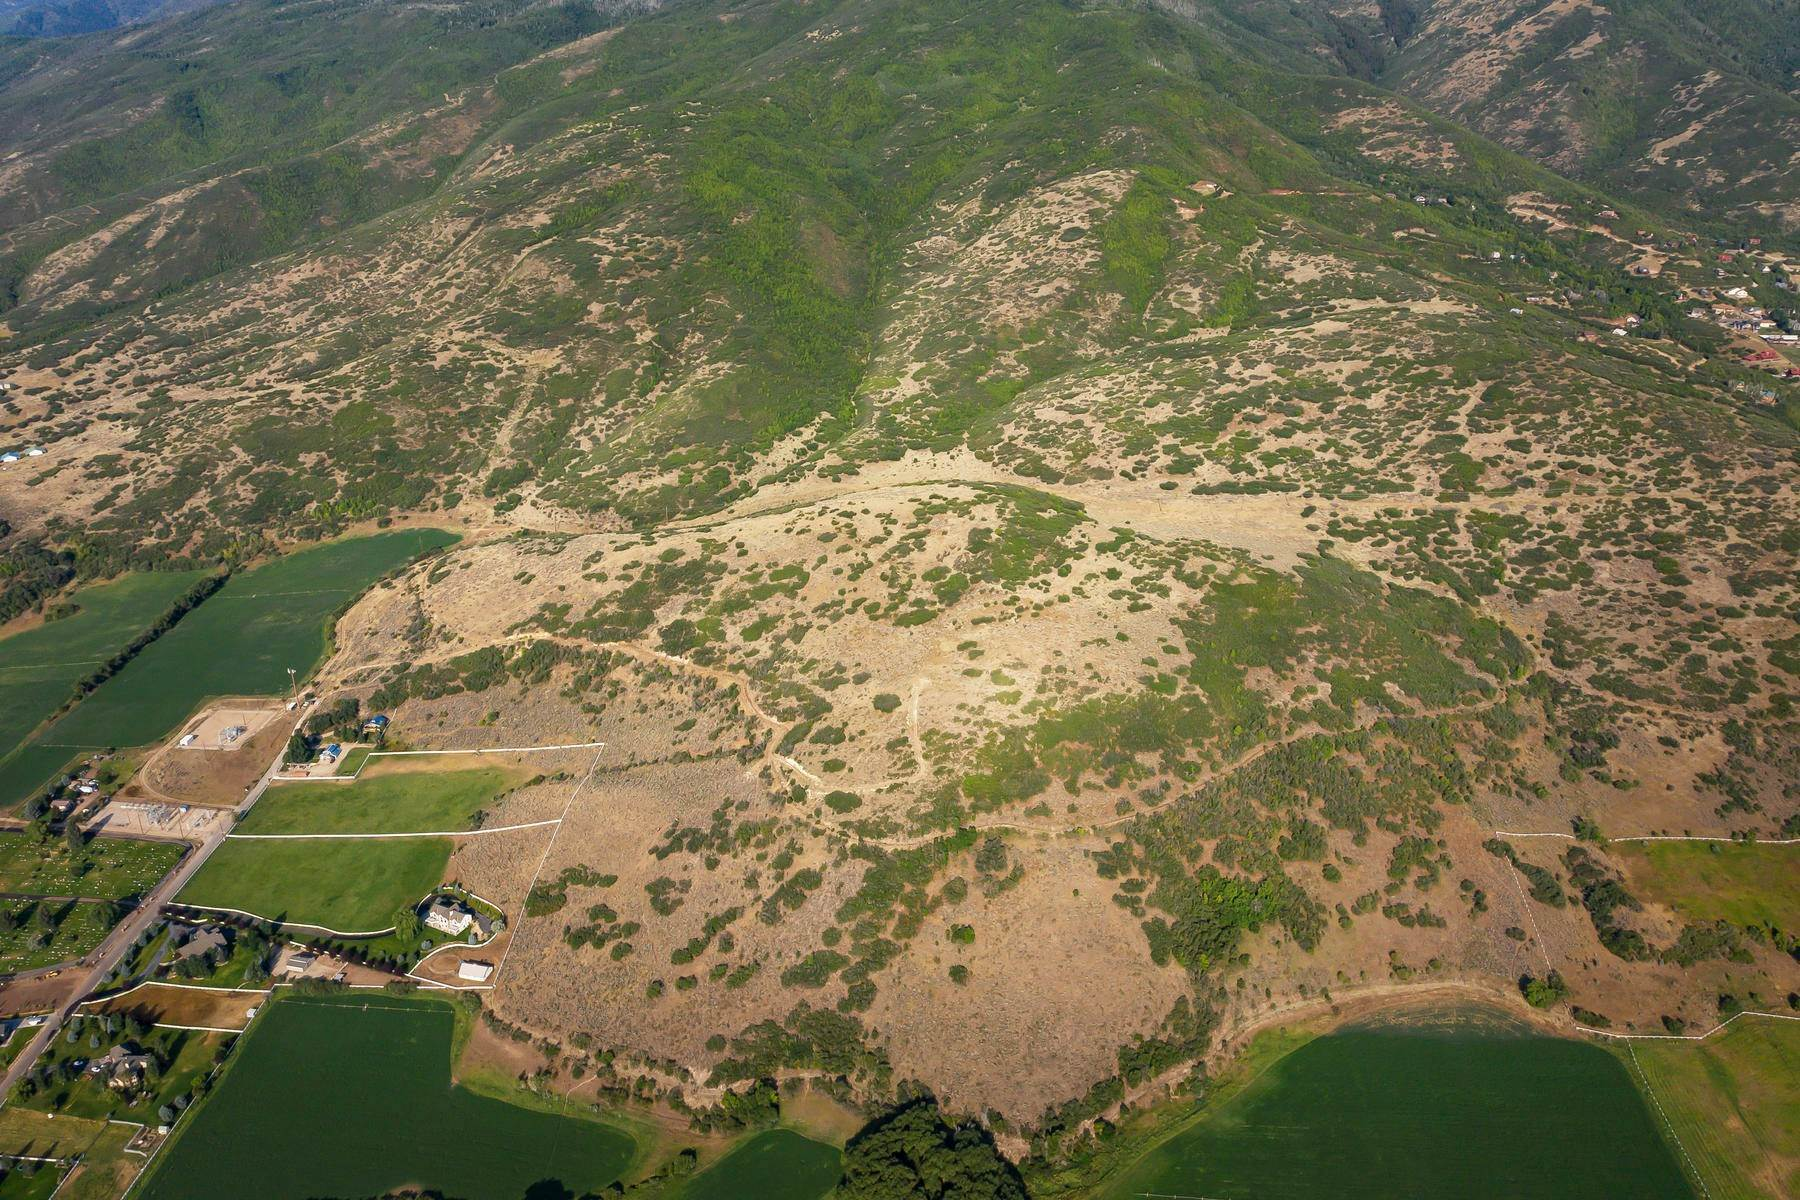 34. Land for Sale at 67 Acres in Midway with Huge Views of the Heber Valley 800 W 500 S Midway, Utah 84049 United States